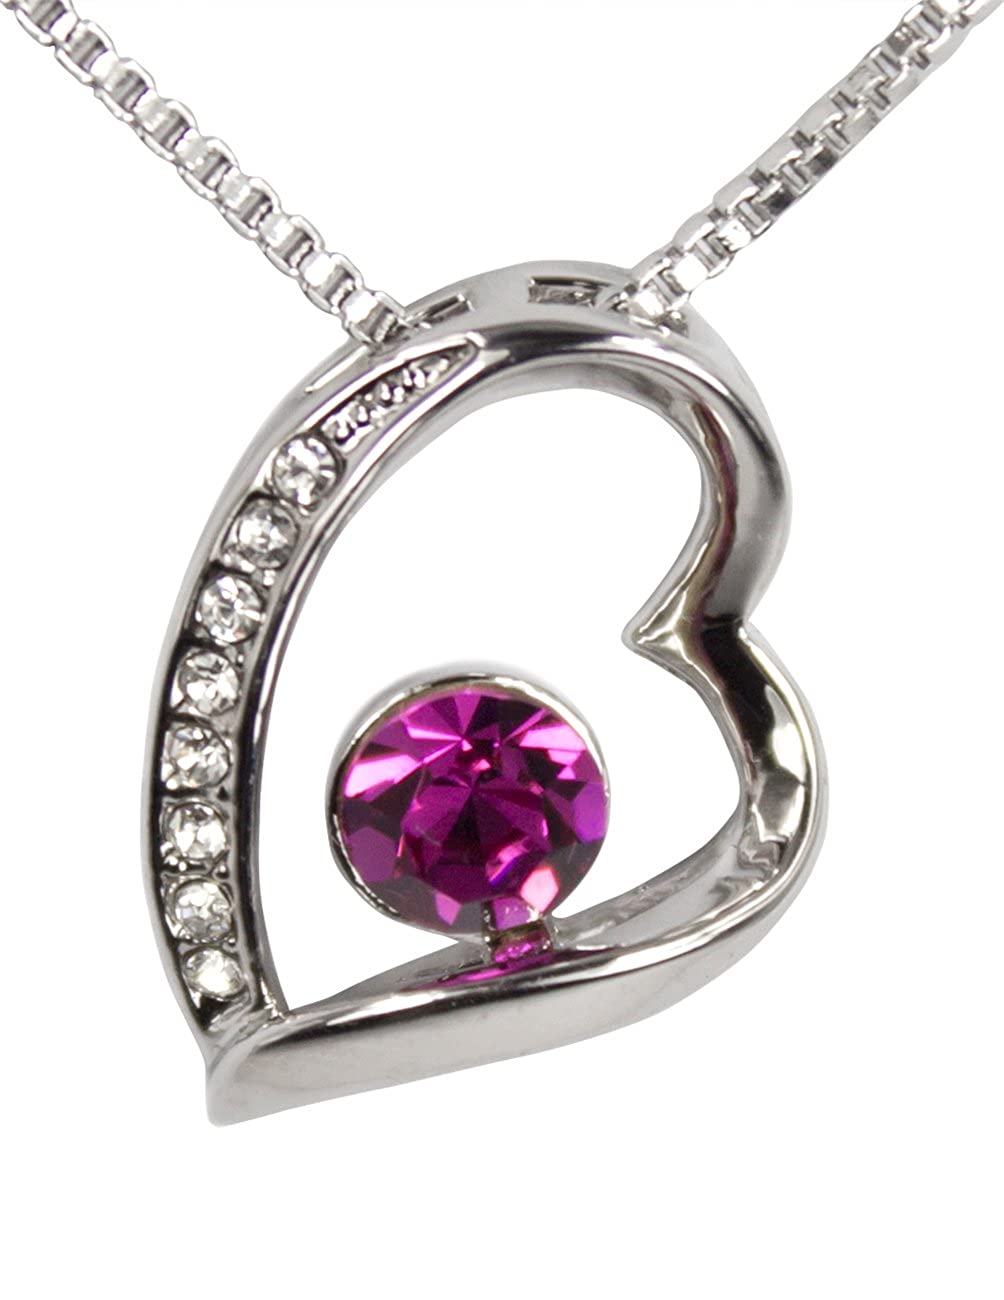 Dahlia Stylish Heart Crystal Rhodium Plated Necklace with Crystals from Swarovski